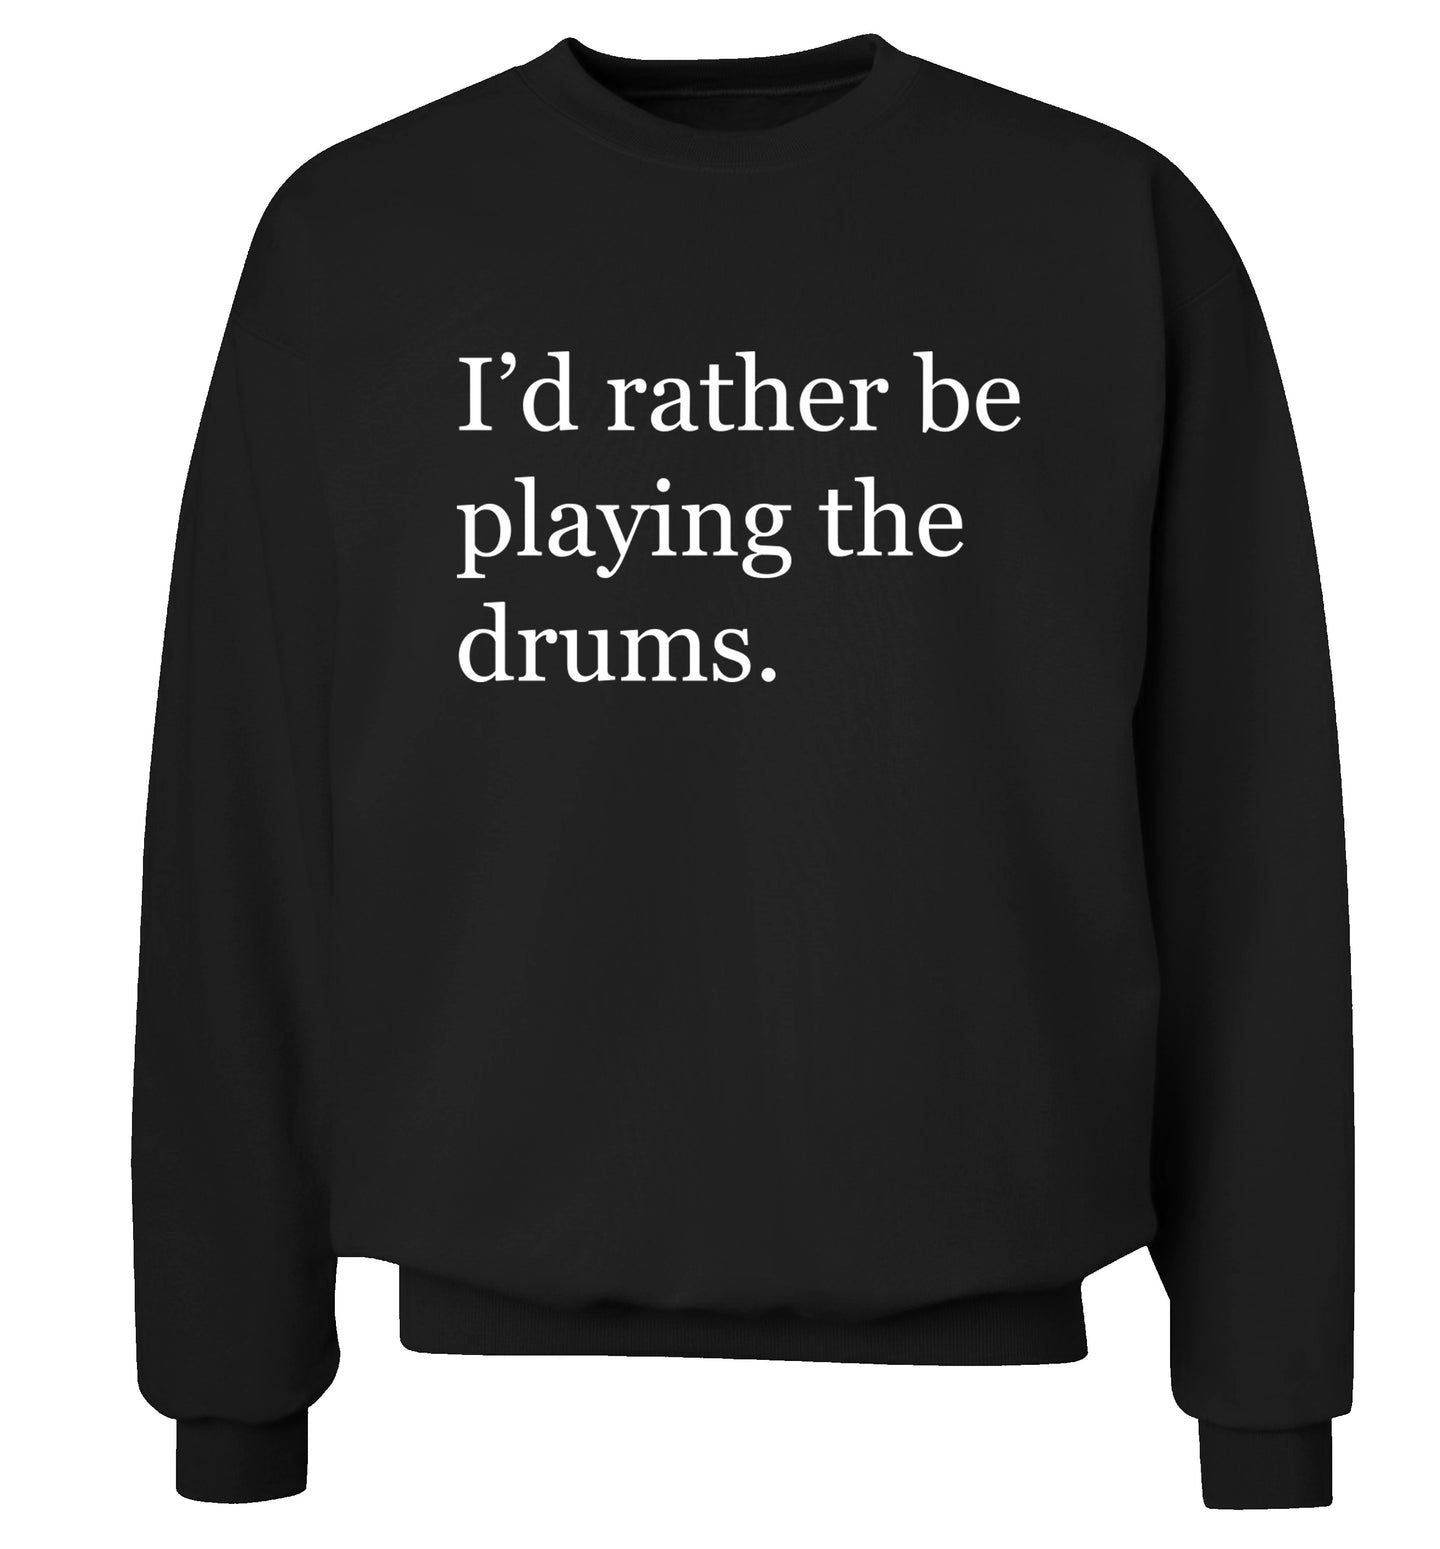 I'd rather be playing the drums Adult's unisexblack Sweater 2XL